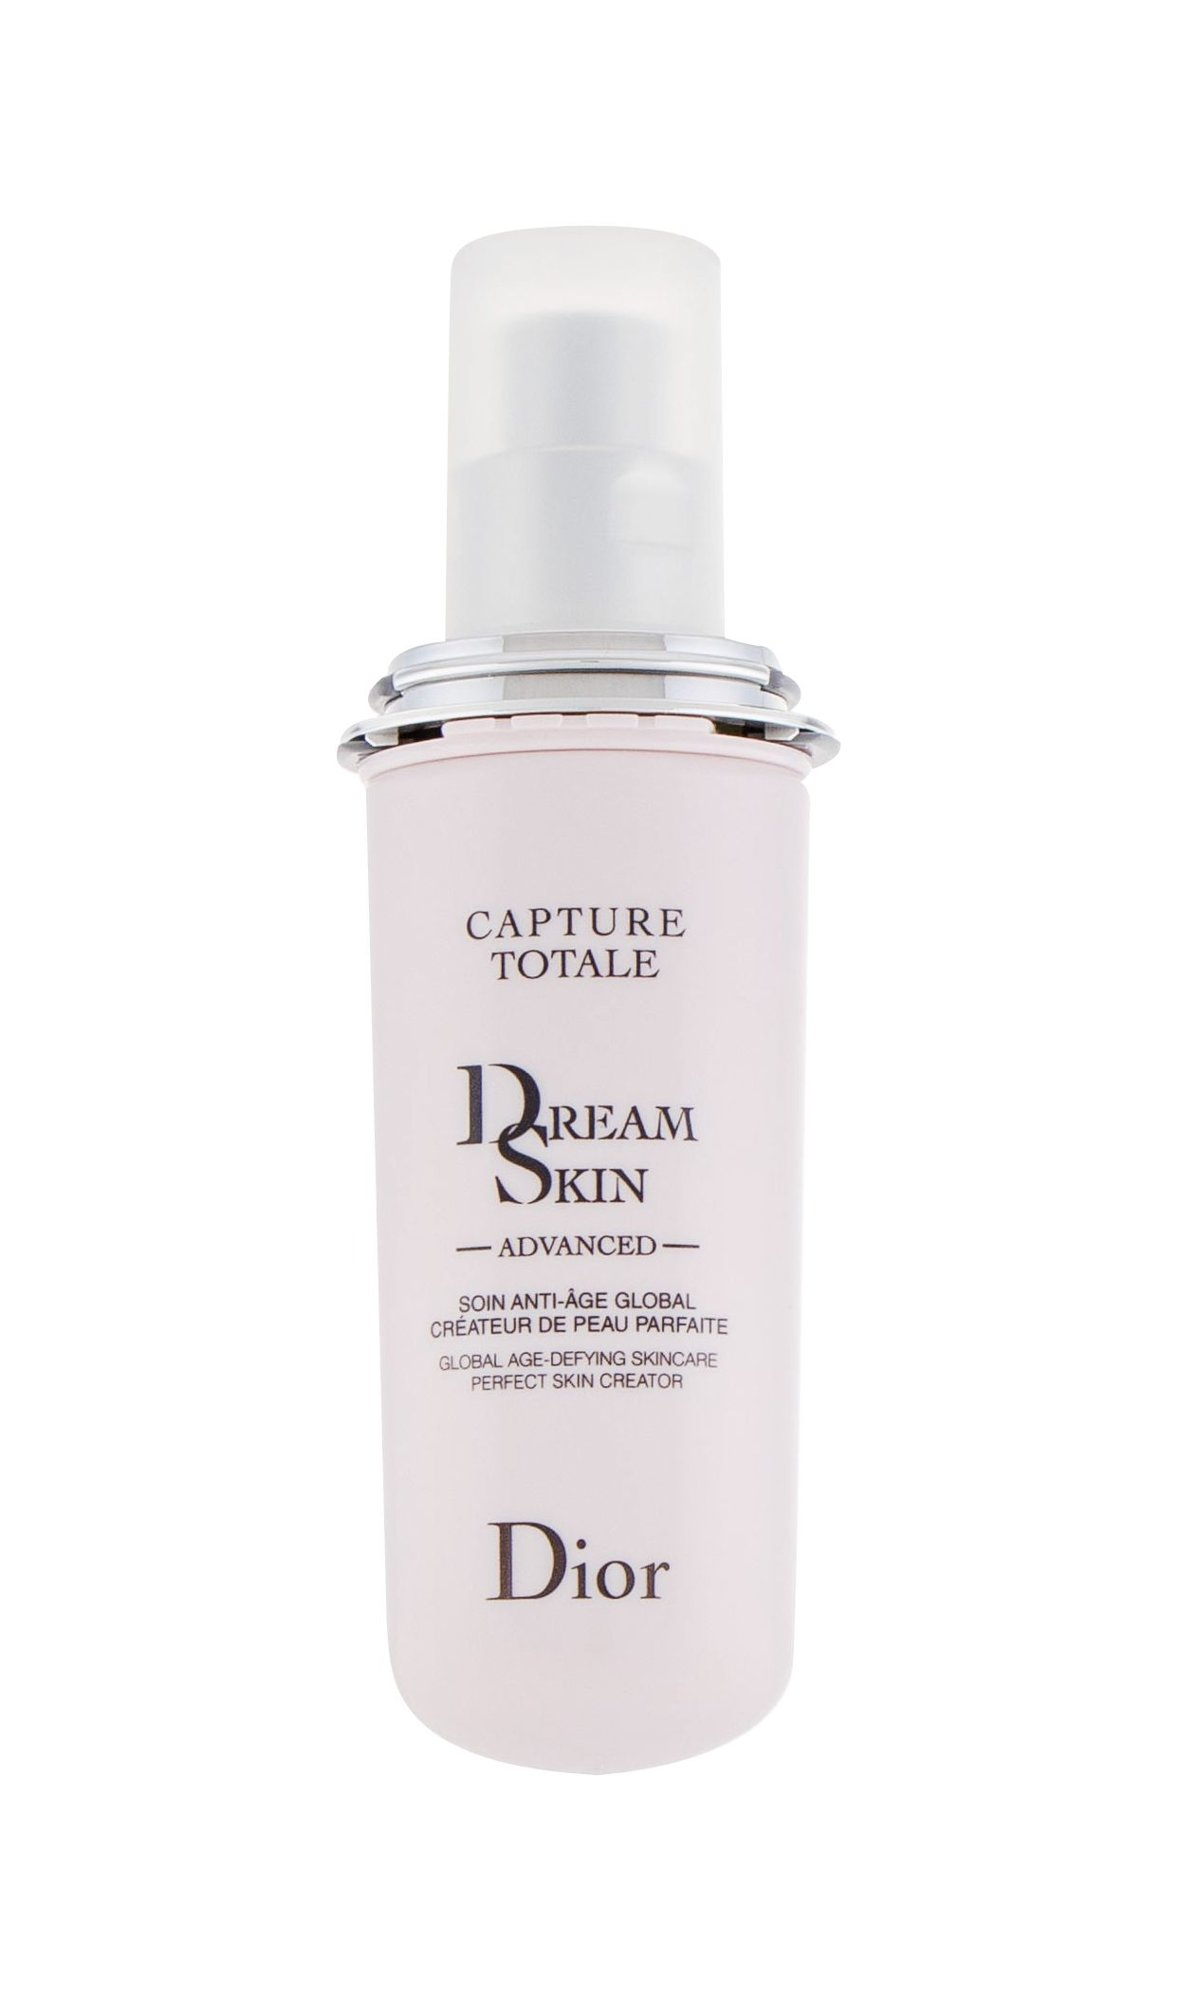 Christian Dior Capture Totale Skin Serum 50ml